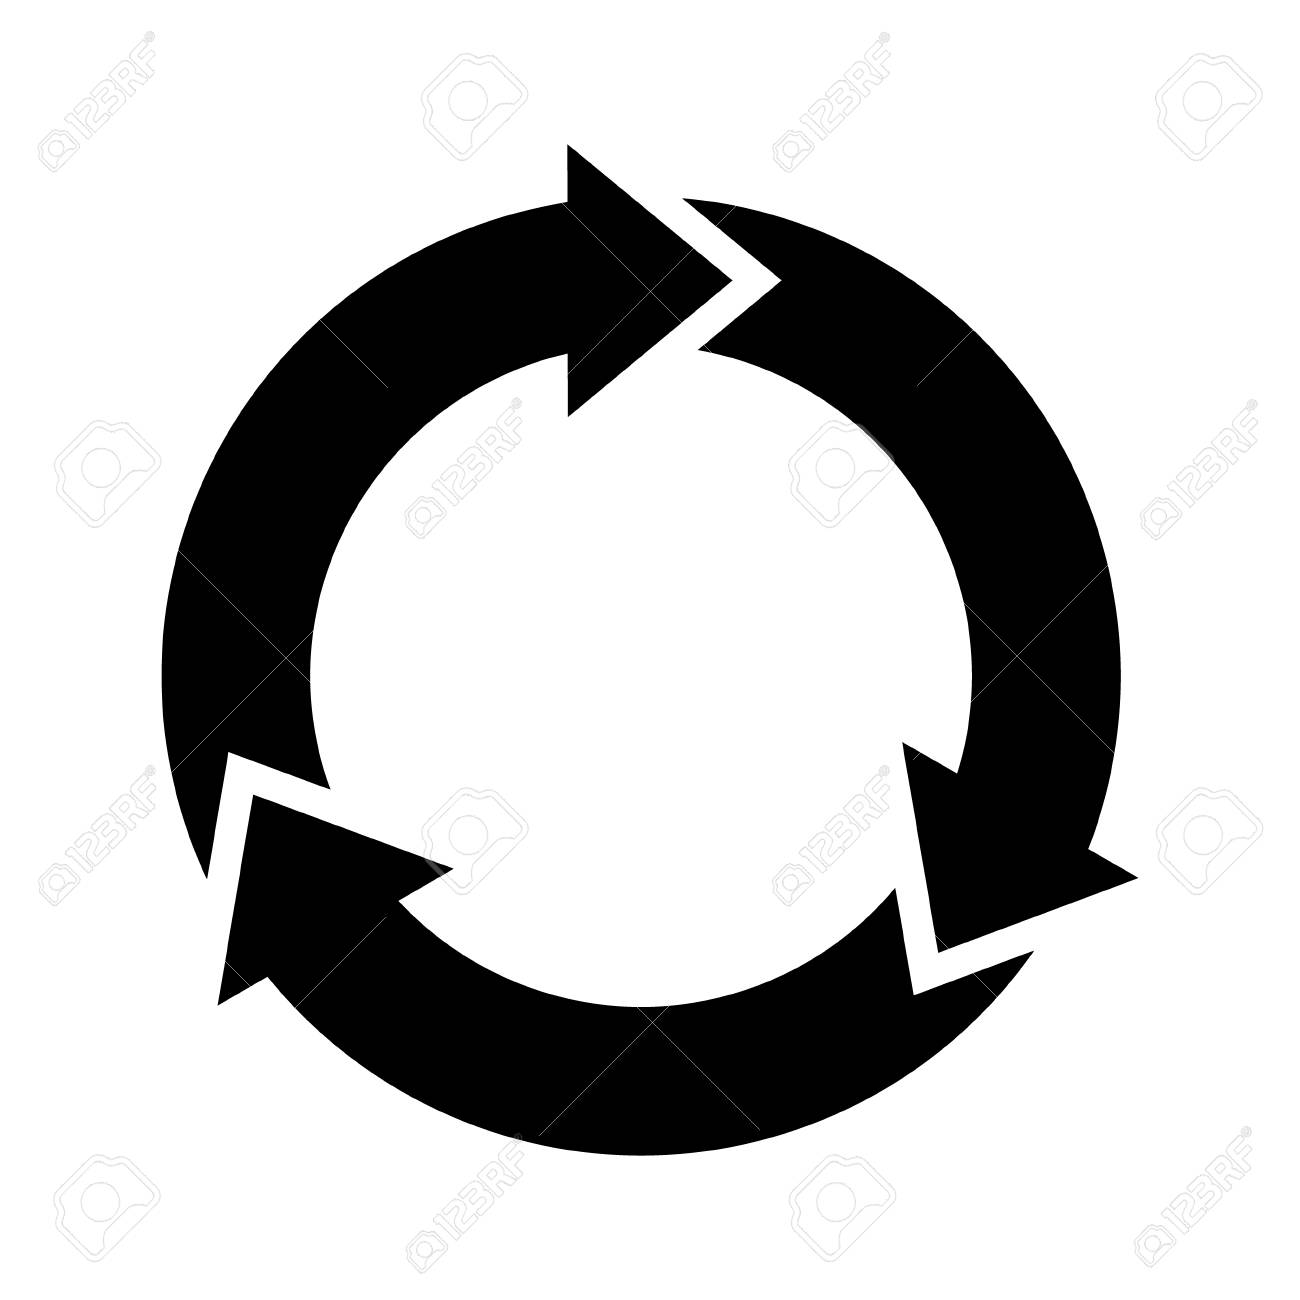 Three circle arrows in a round rotating circular motion flat vector icon for apps and websites - 97882035